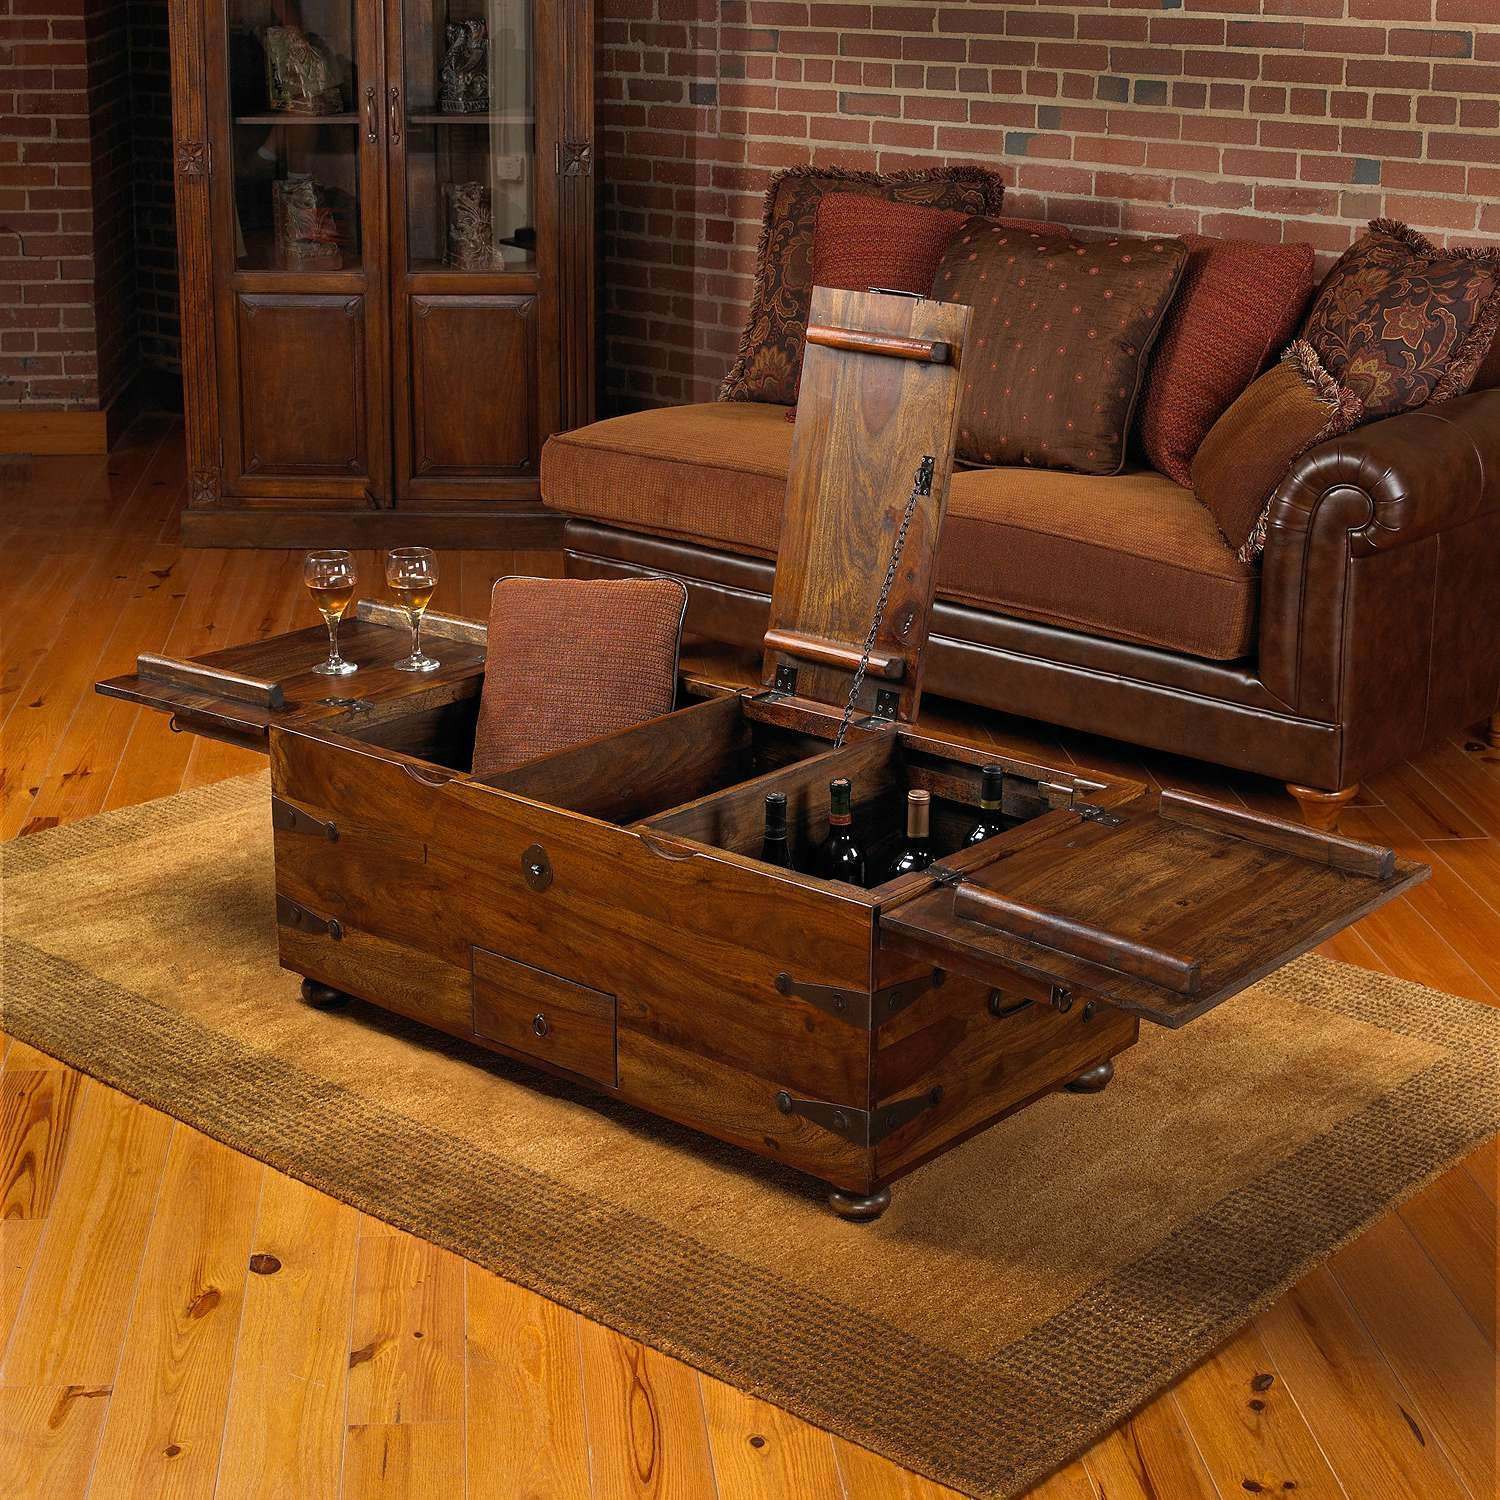 Fashionable Trunks Coffee Tables With Regard To Thakat Bar Box Trunk Coffee Table – Wine Enthusiast (View 4 of 20)